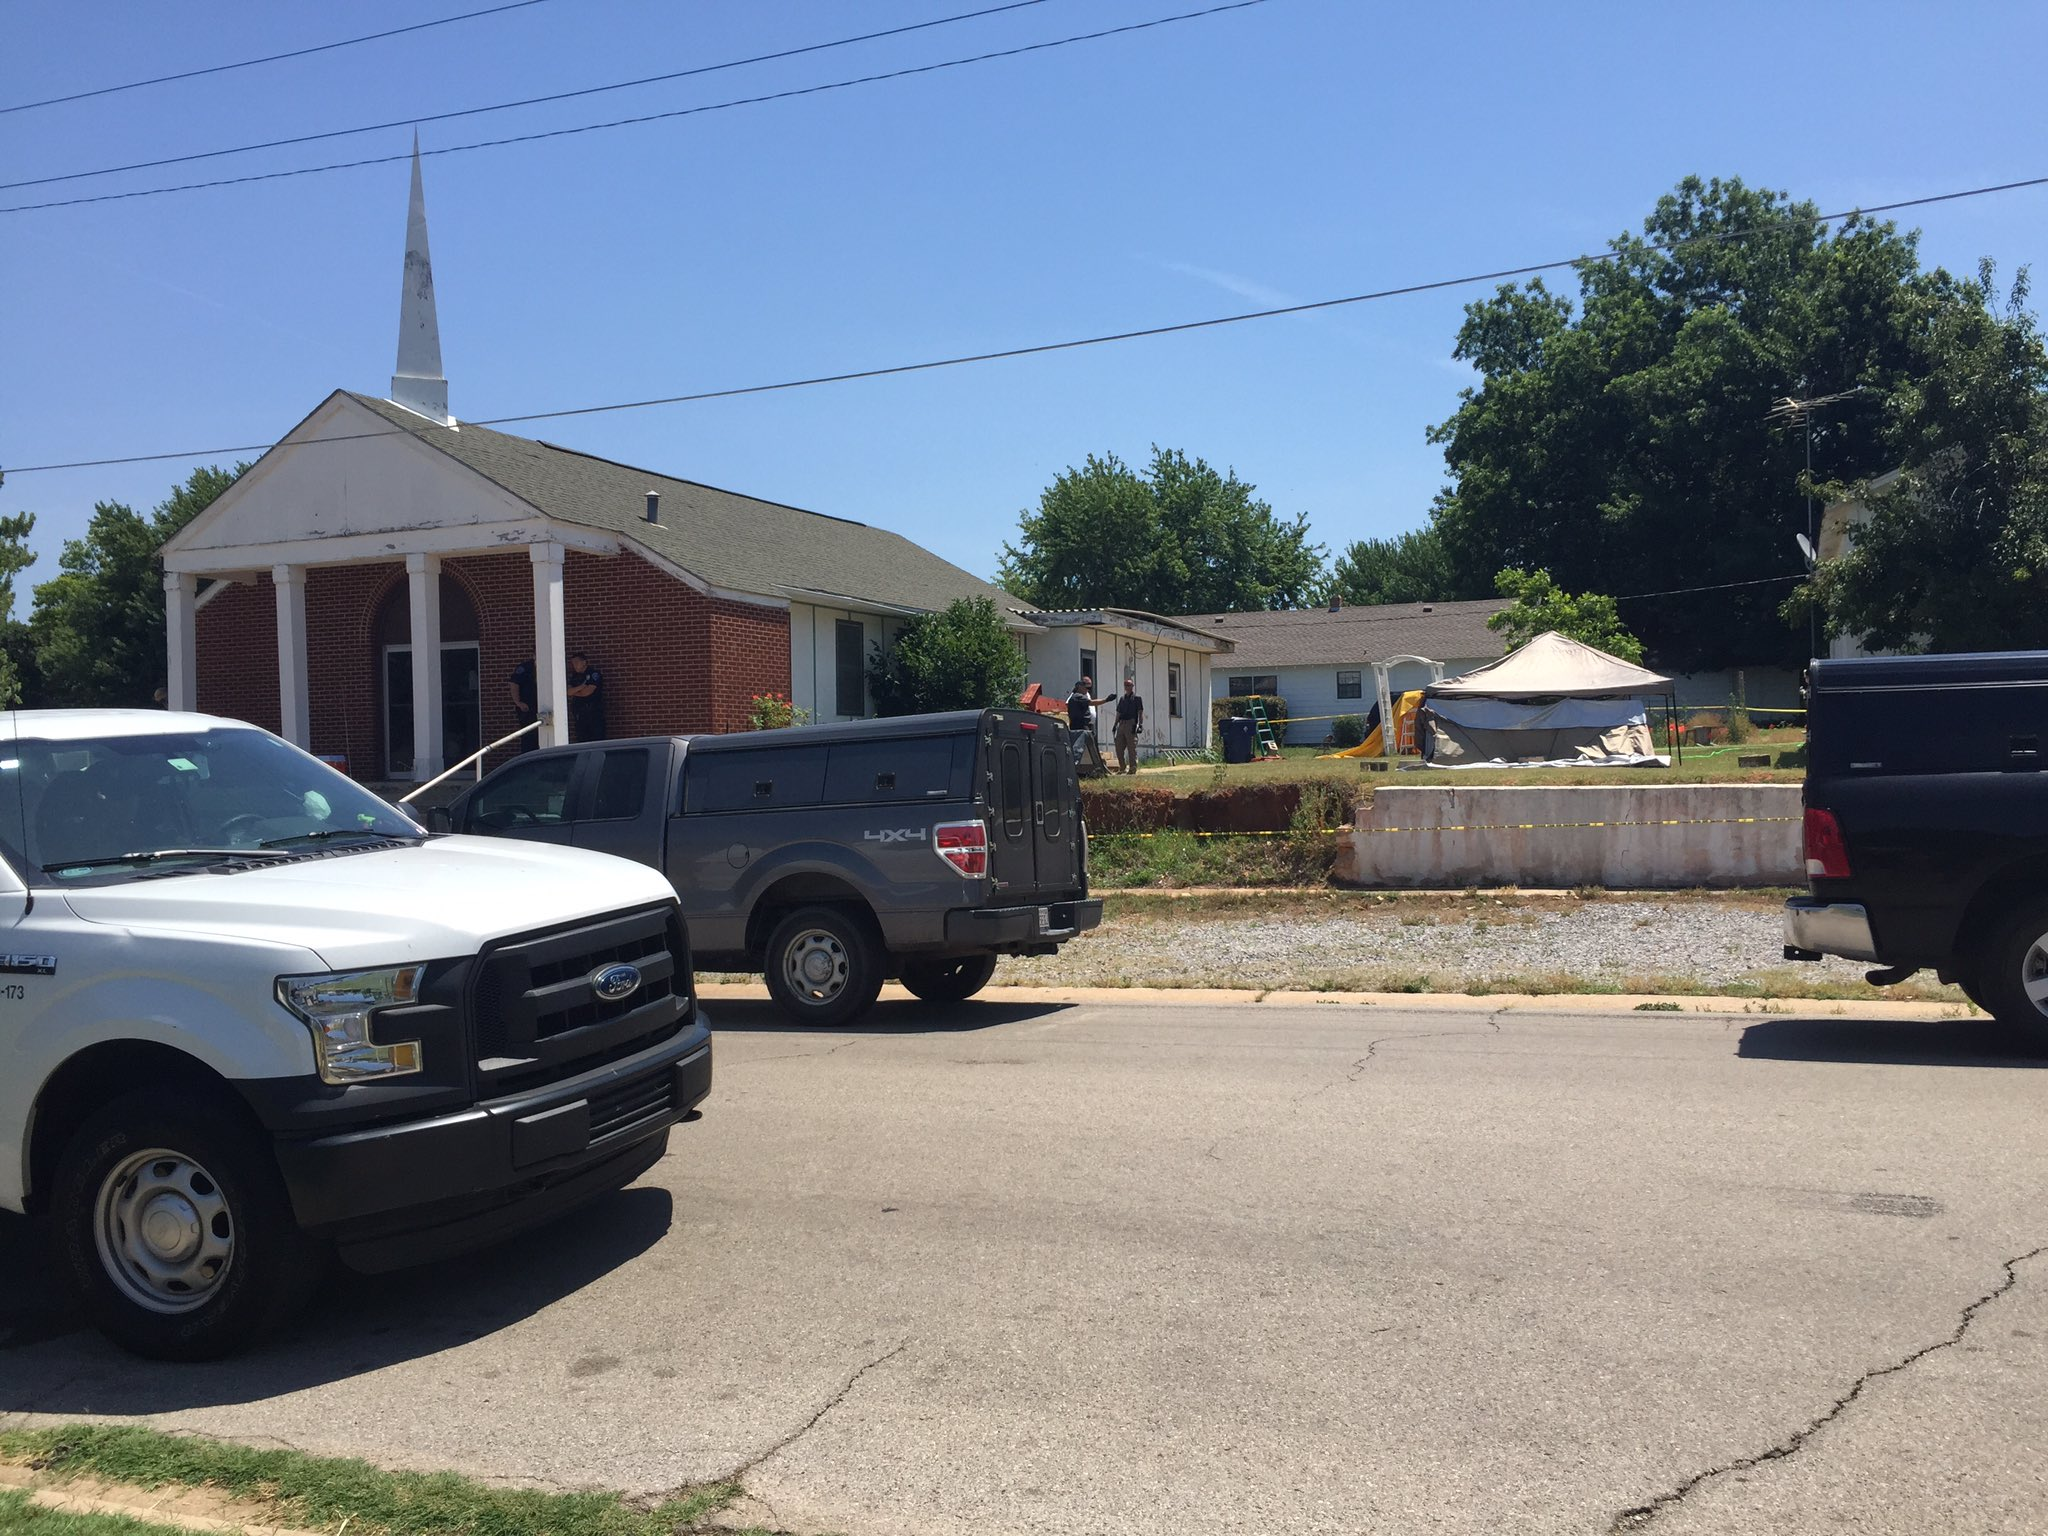 Police investigate after a Chickasha pastor's body was found burned early June 16. (KOKH/Julie Calhoun)